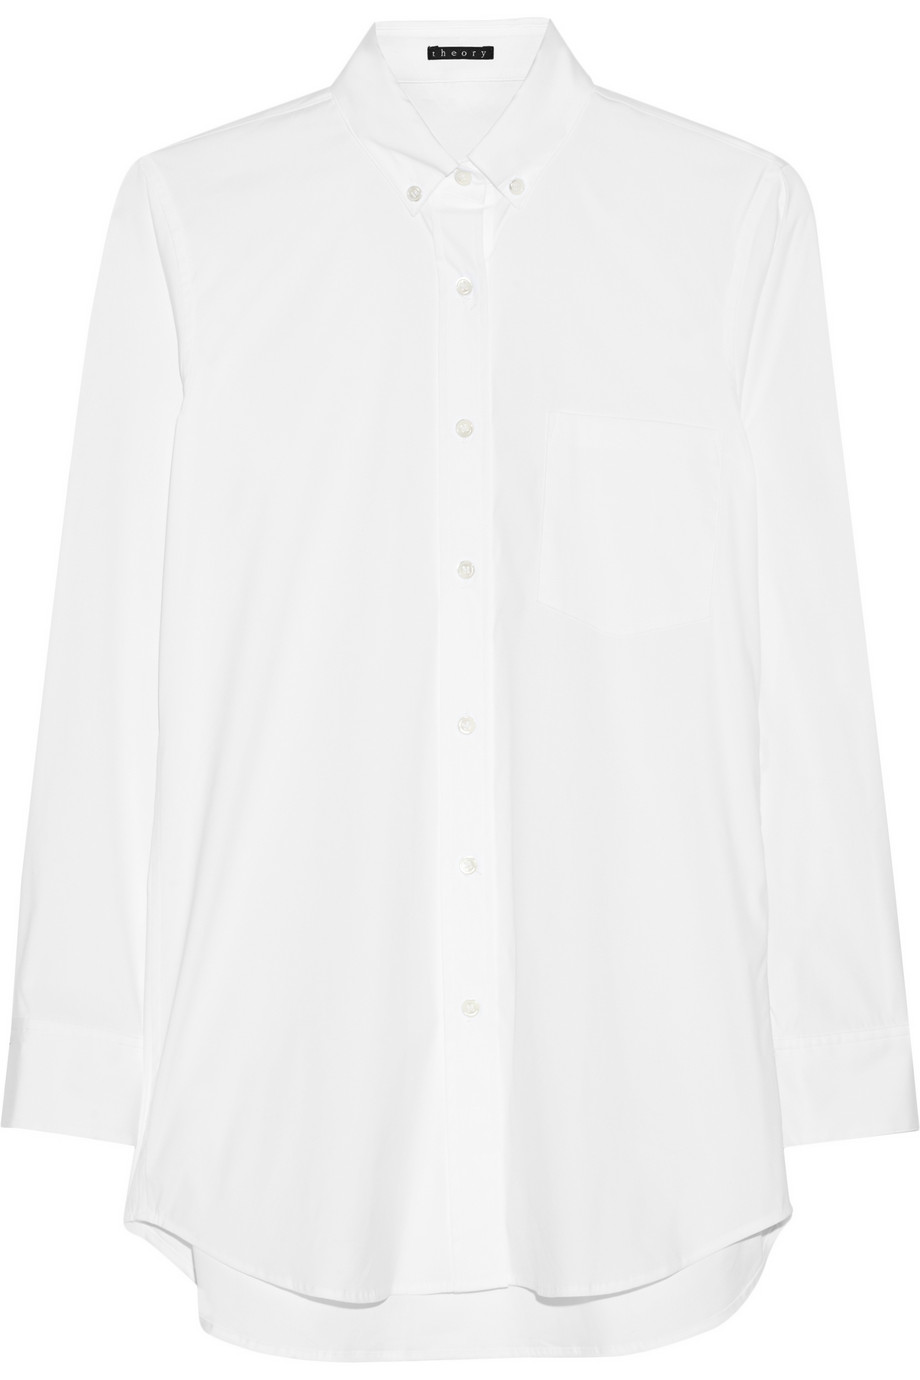 Theory Macina cotton-blend shirt – 55% at THE OUTNET.COM